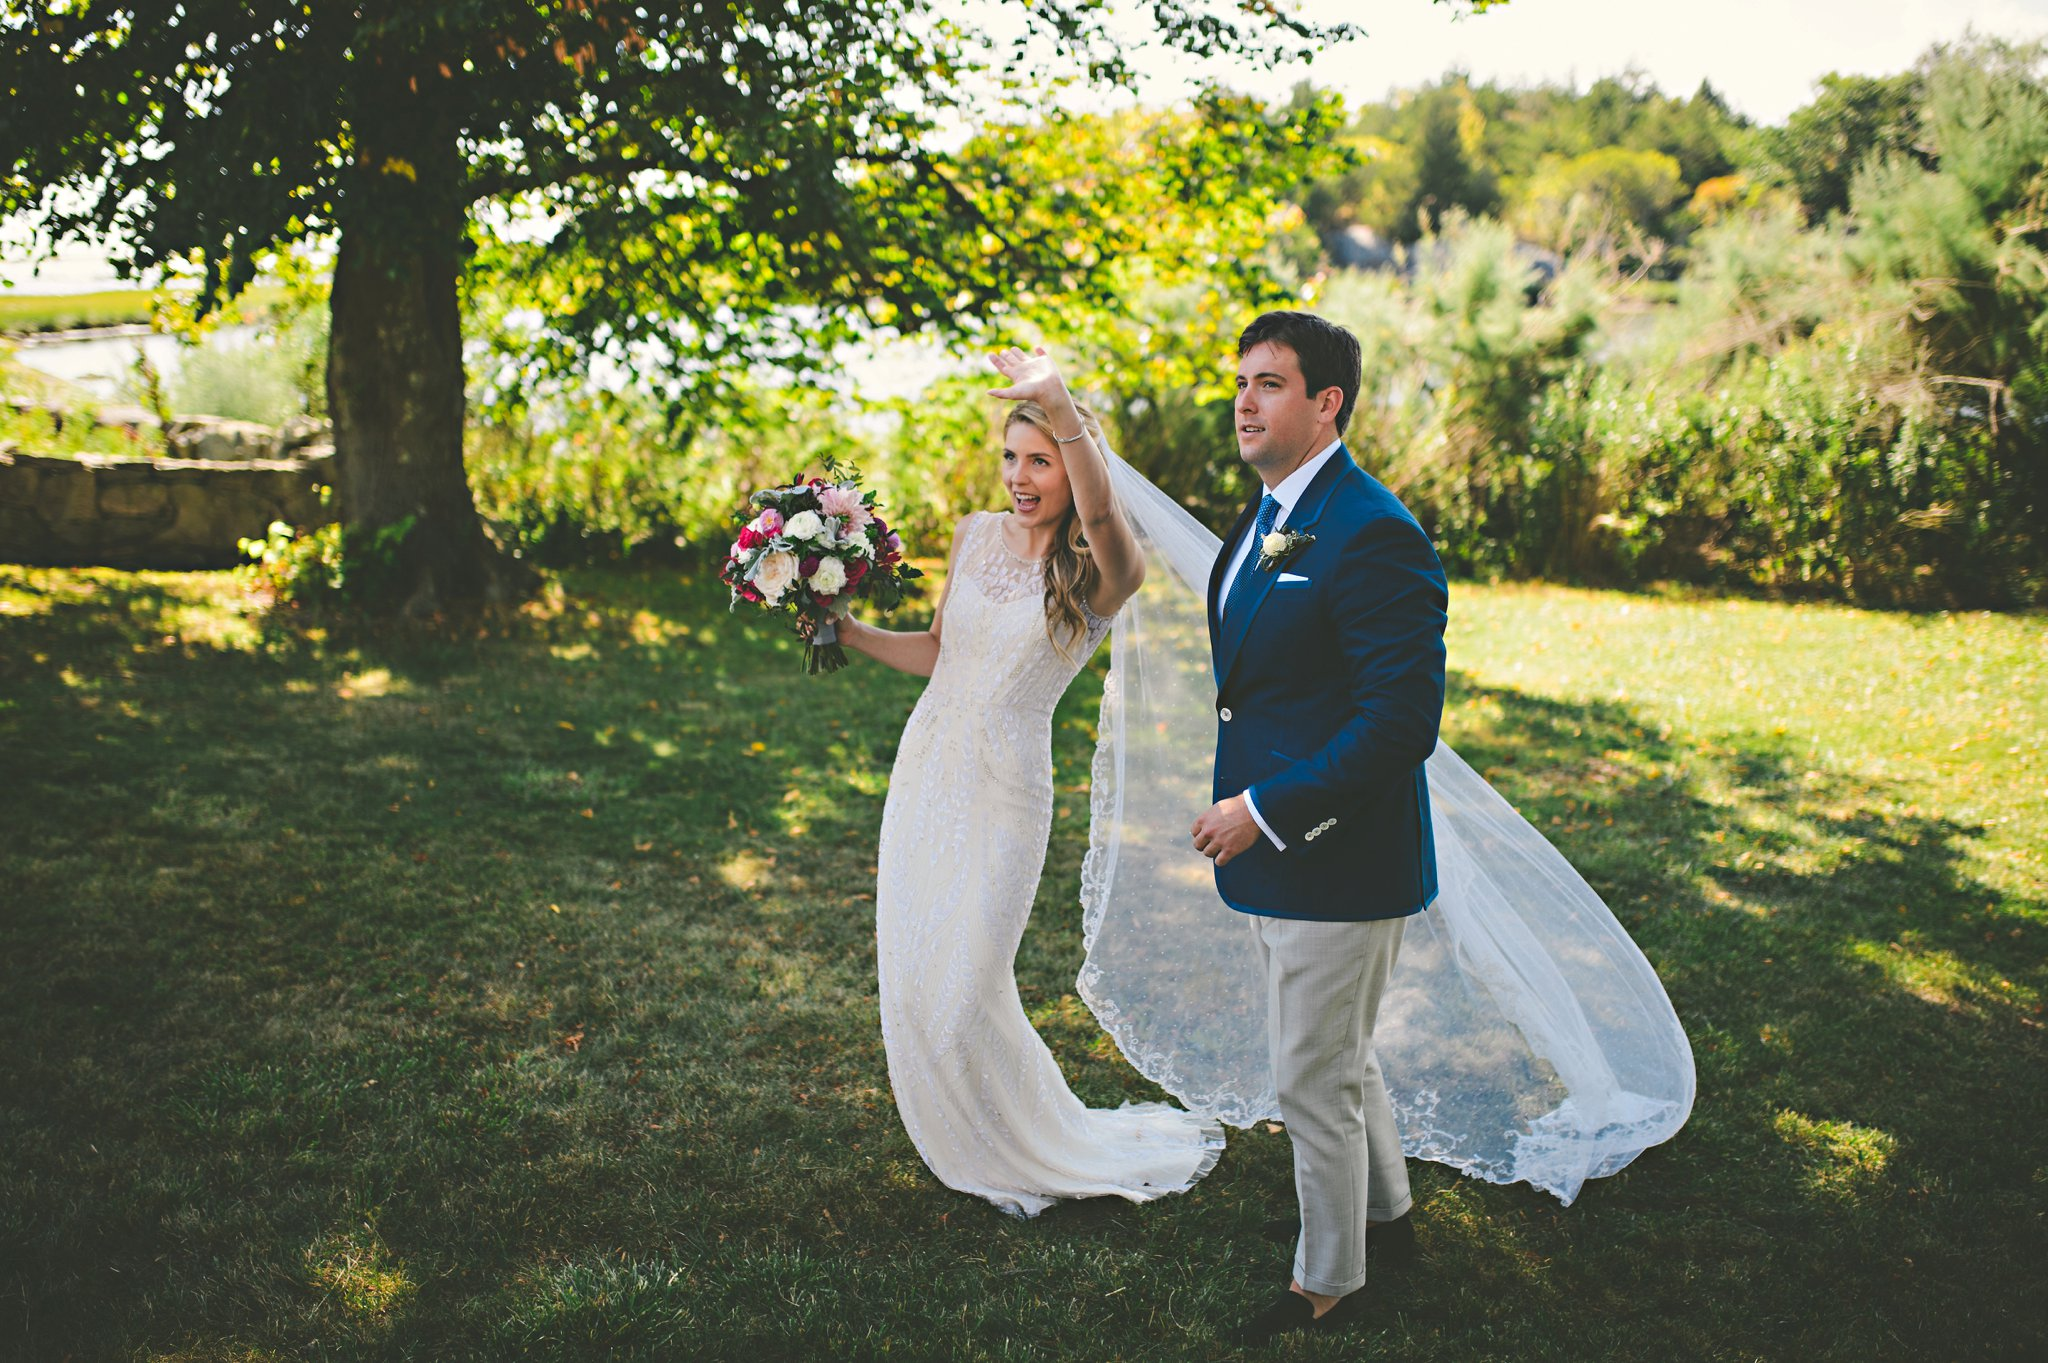 lauren_aaron_wed_0383